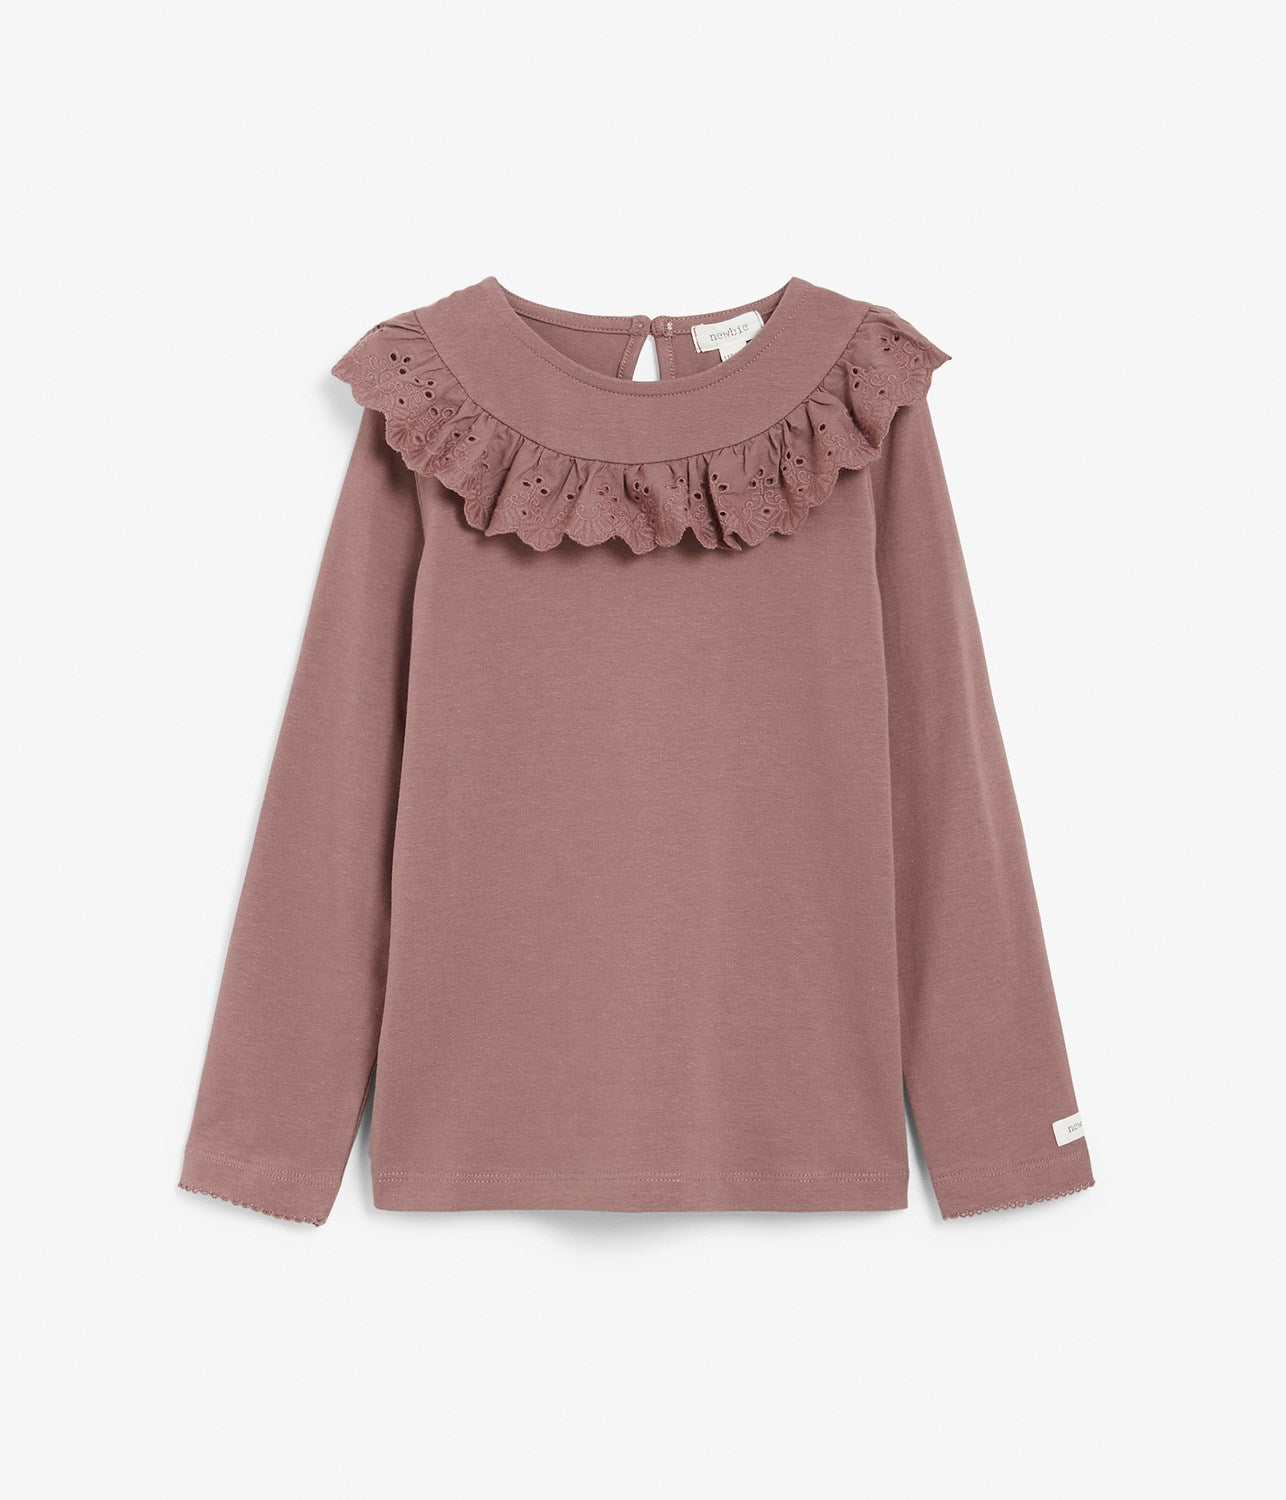 KIds pink top with lace frills